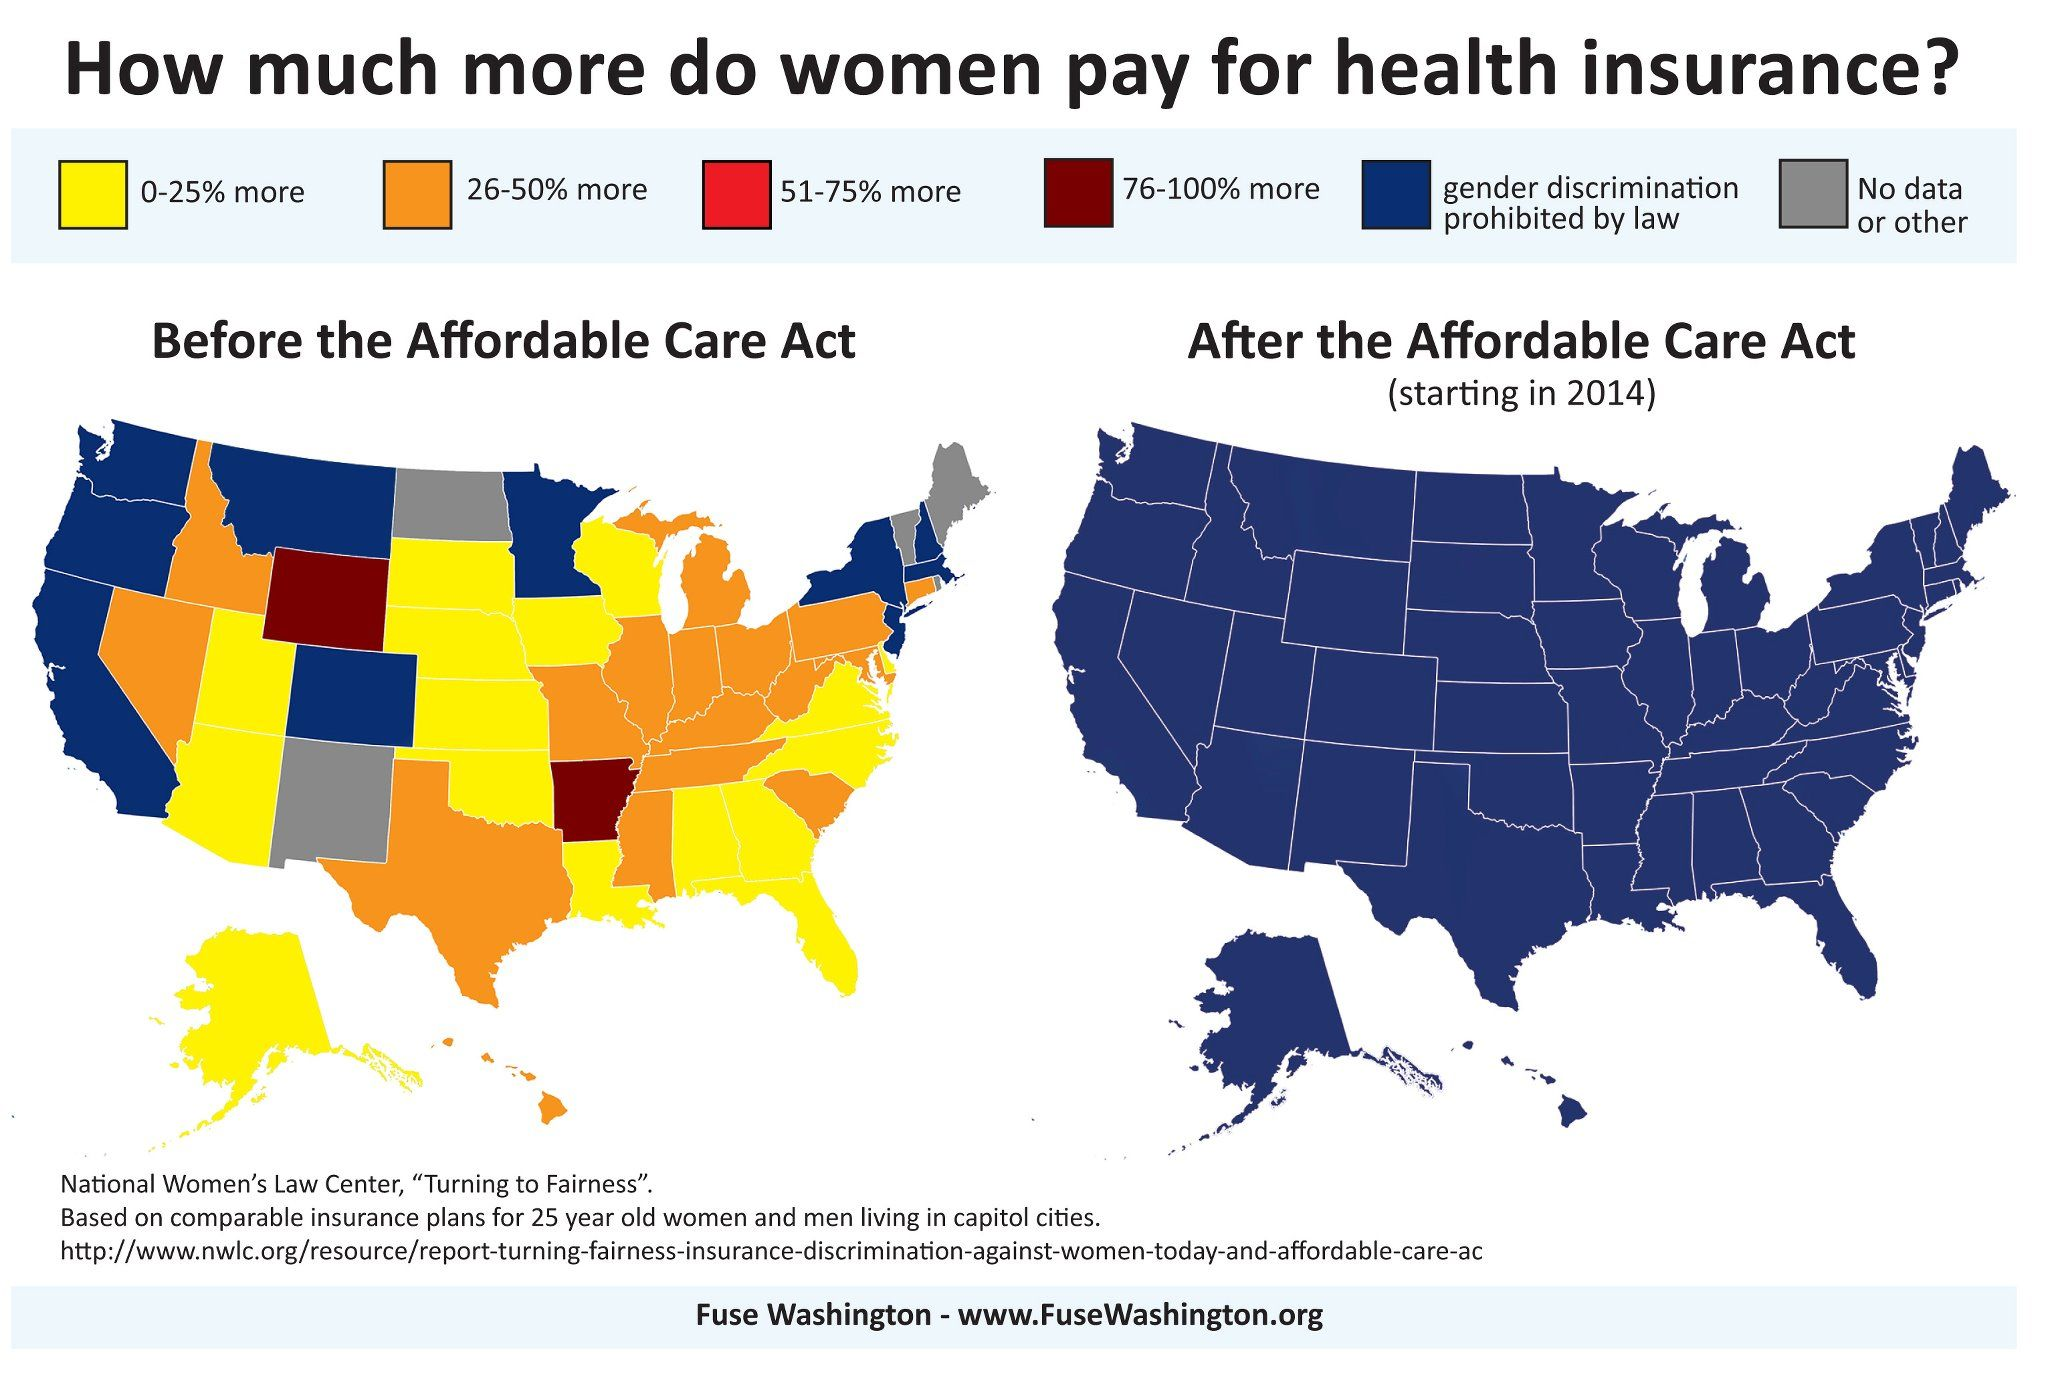 How much more do women pay for health insurance? Health